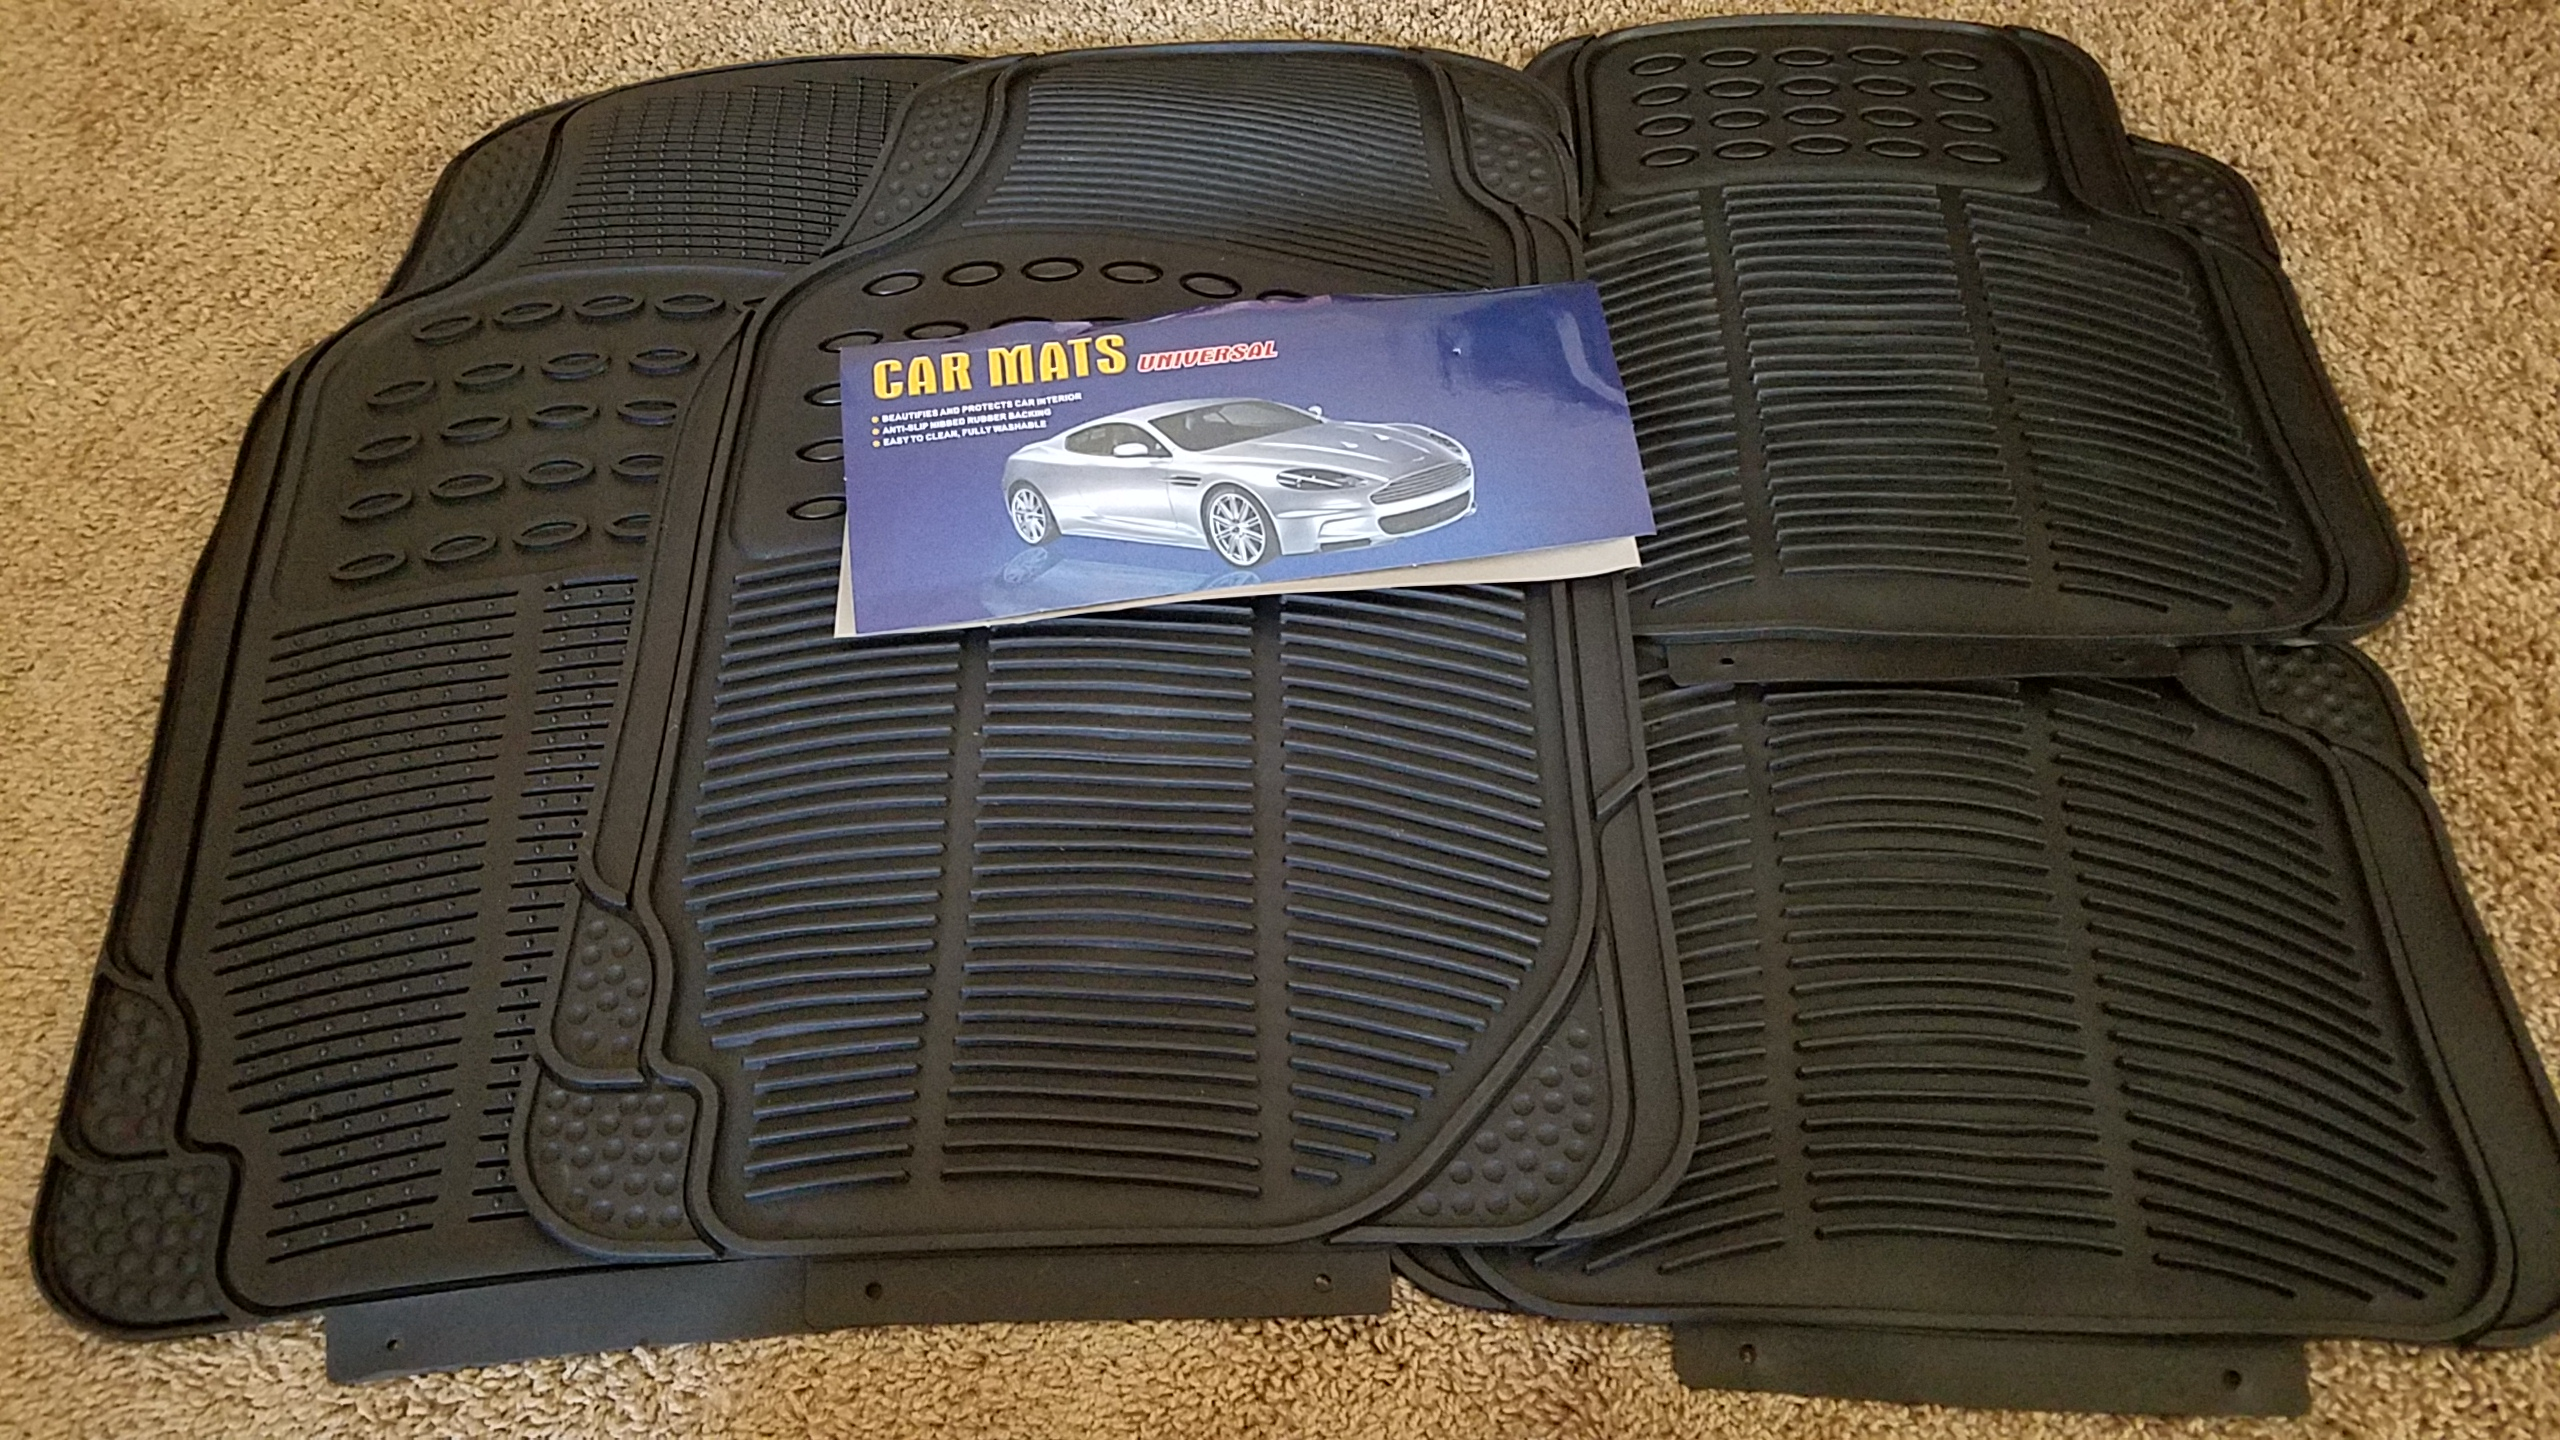 Very pleased with these car mats! Perfect fit!